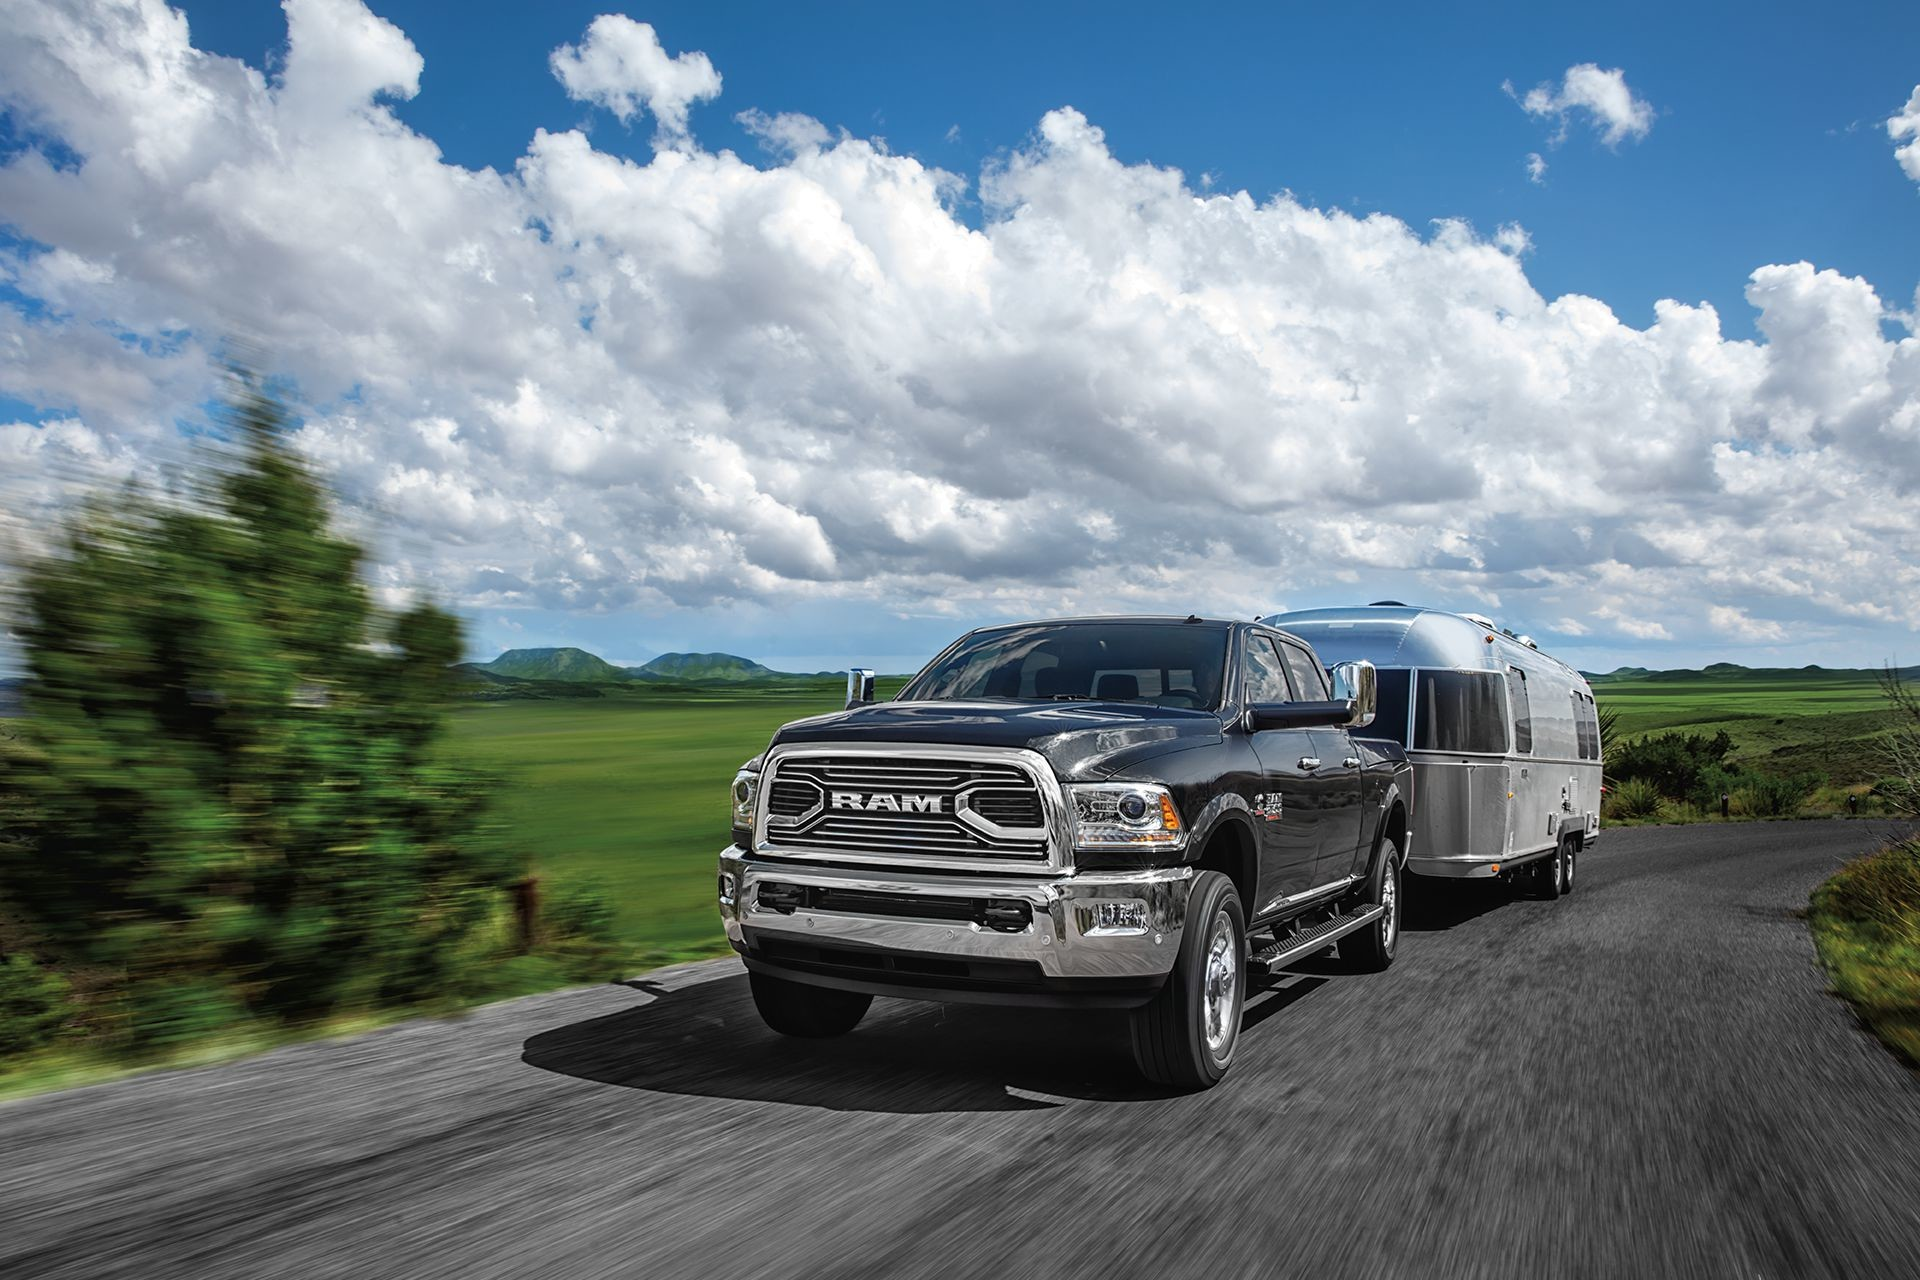 2018 RAM 2500 pickup truck Best-In-Class 3/4 ton gas towing